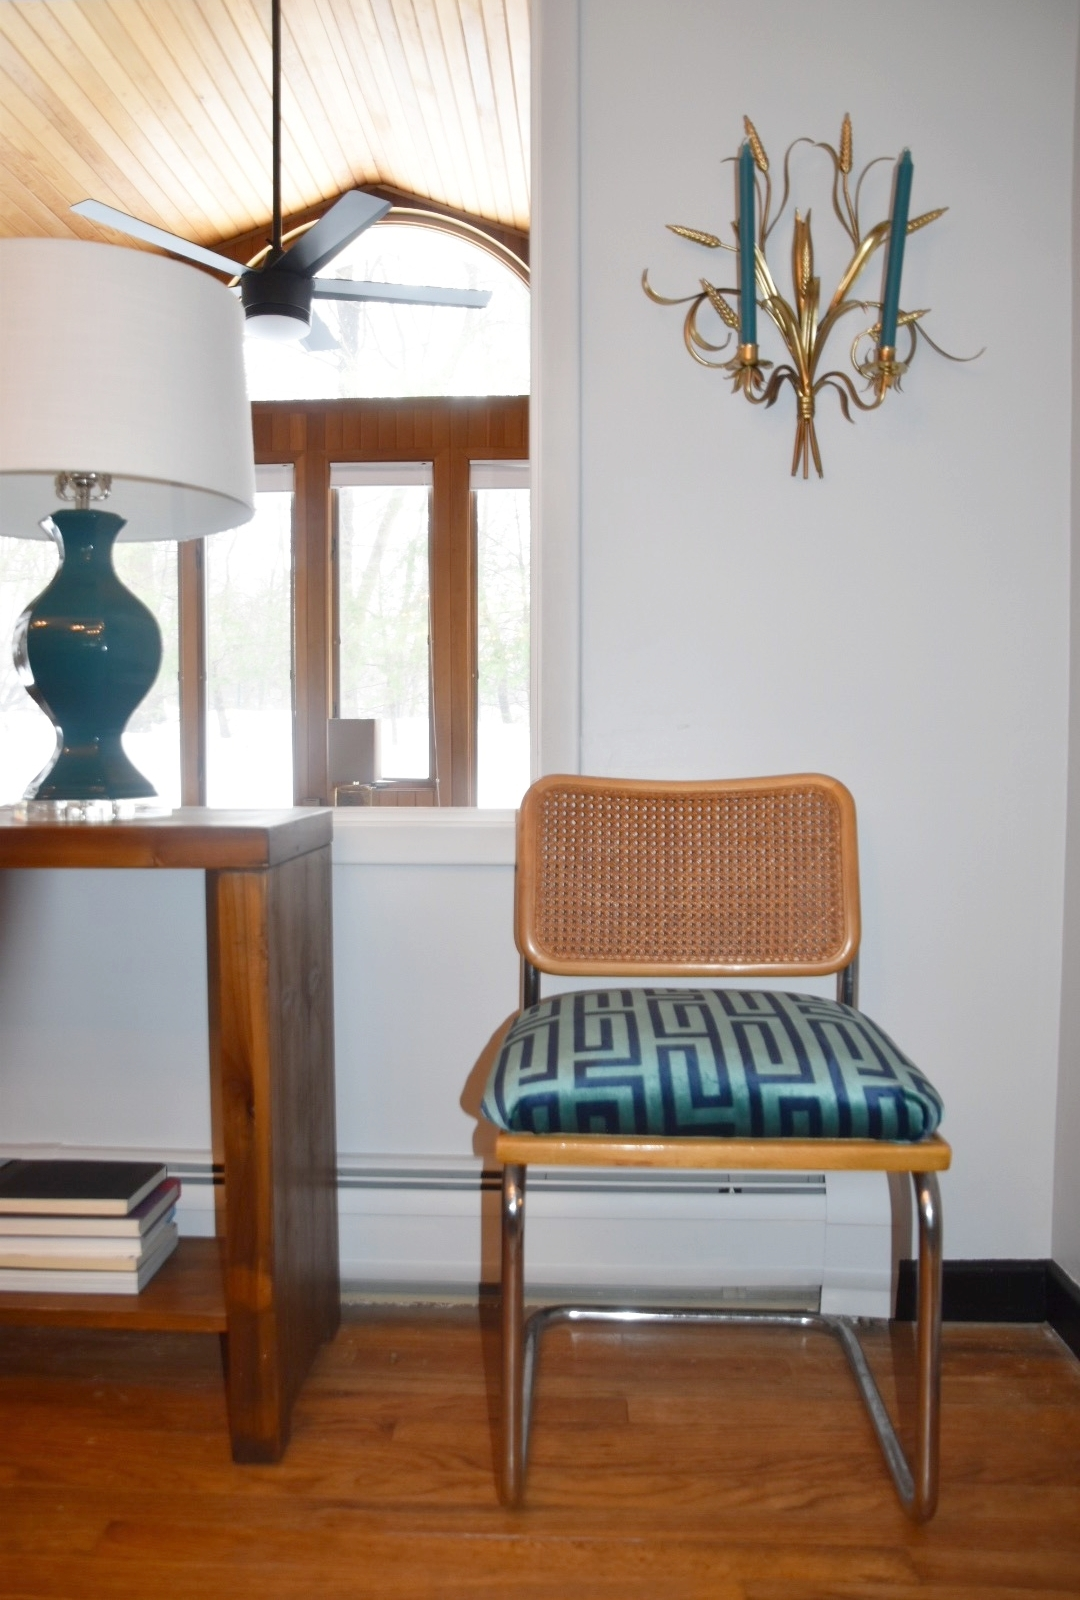 Cesca chairs and wheat sconce lend to a midcentury feel, while the Greek key fabric and Lucite base lamp add a modern lux layer to the space.